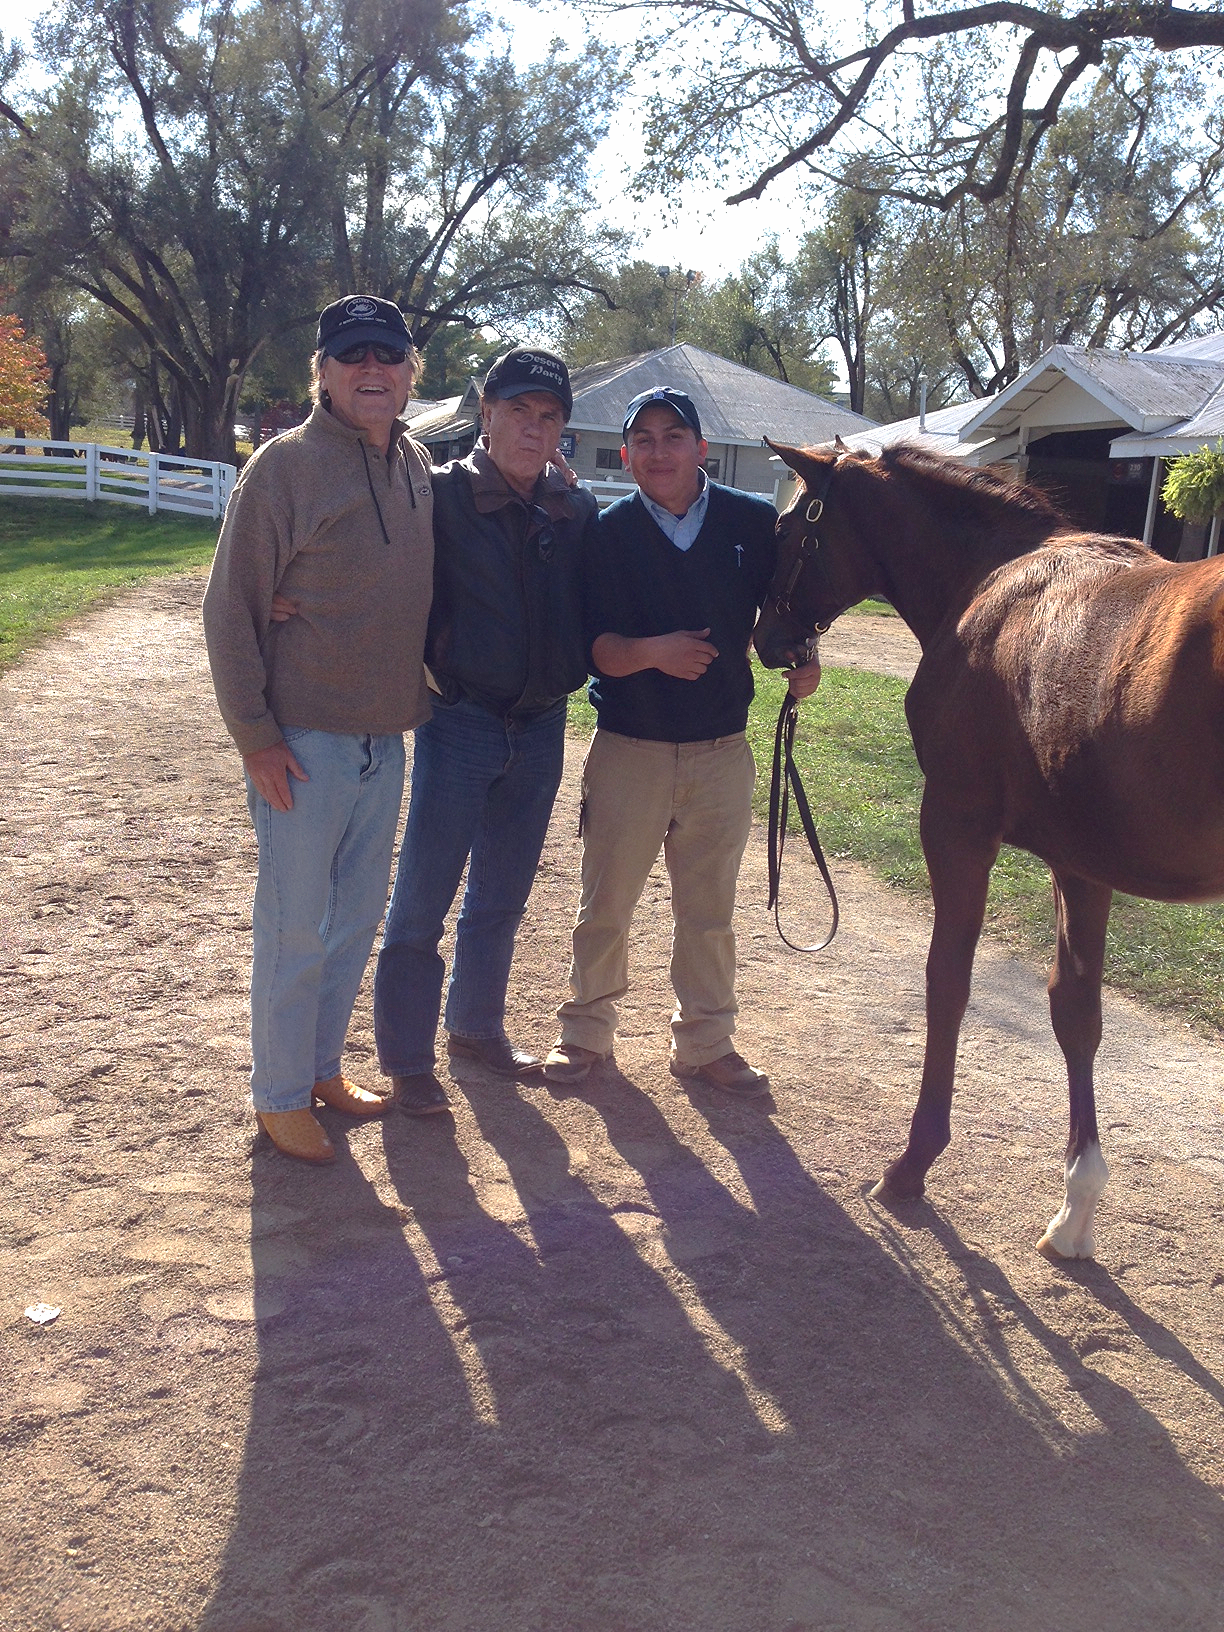 Dr Sinatra, David Smith, Sage Cat/Bodiemeister filly, and groom pre-sale.